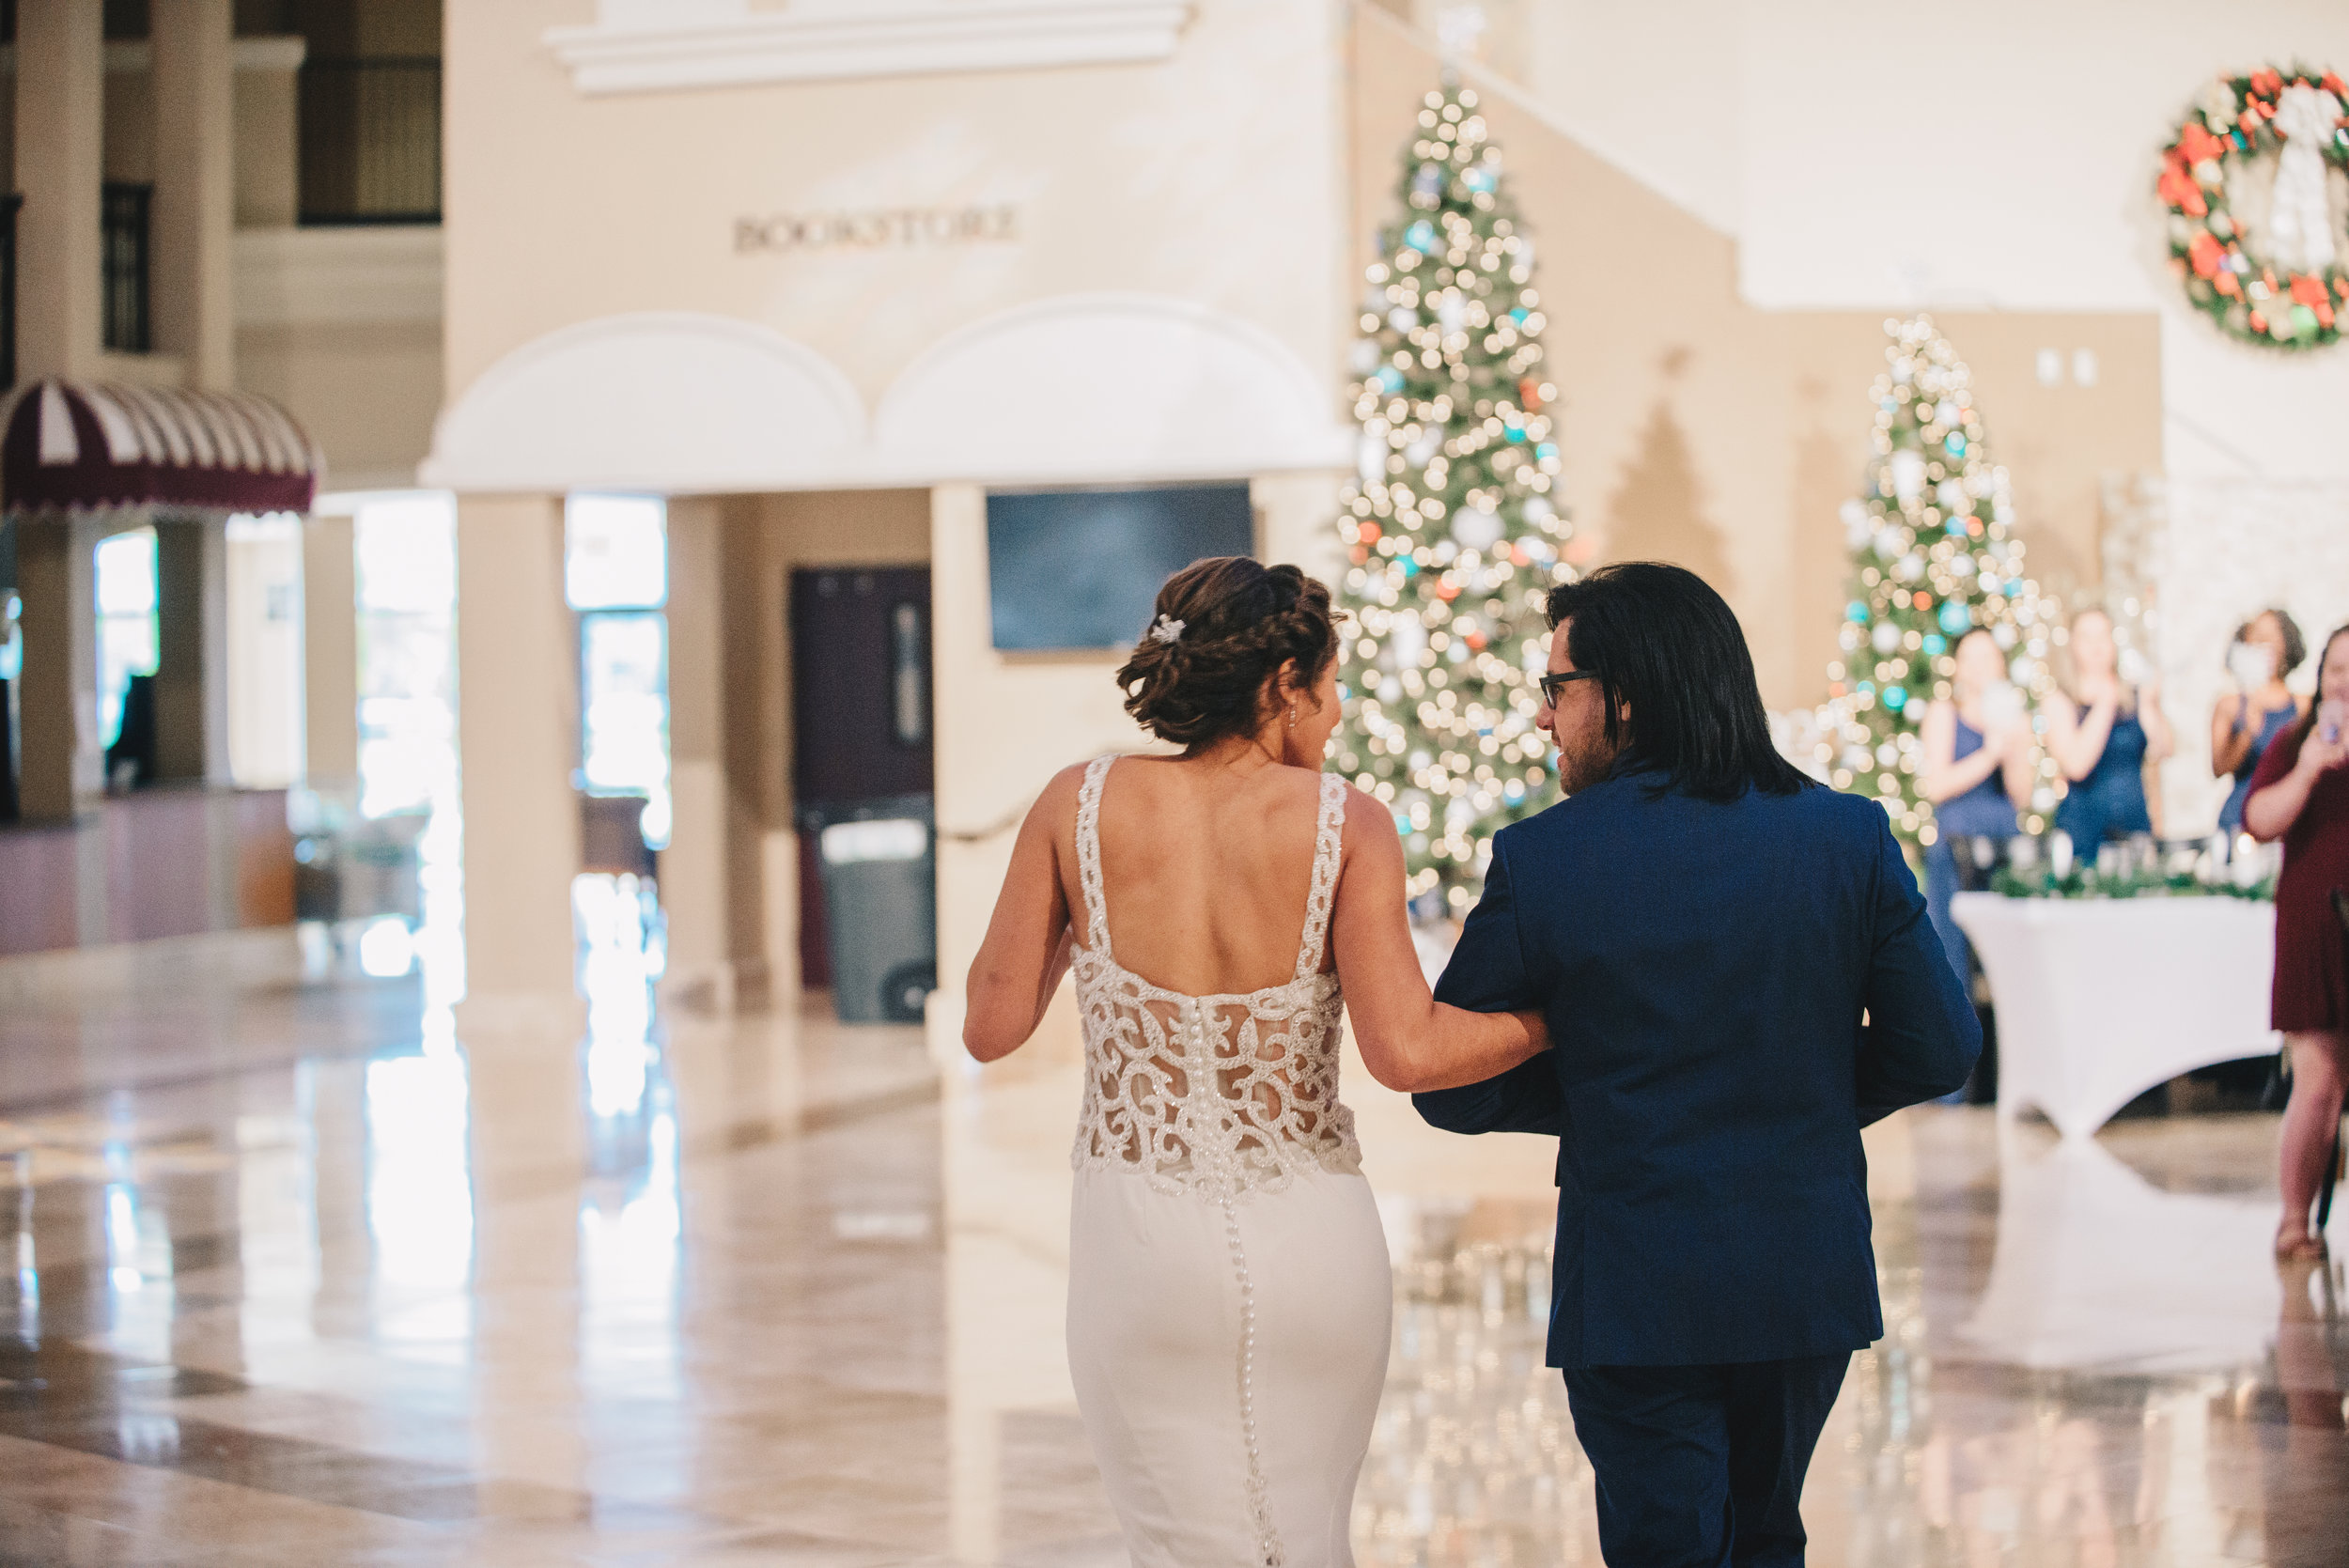 Los-Vargas-Photo-Central-Florida-Christmas-Wedding-361.jpg